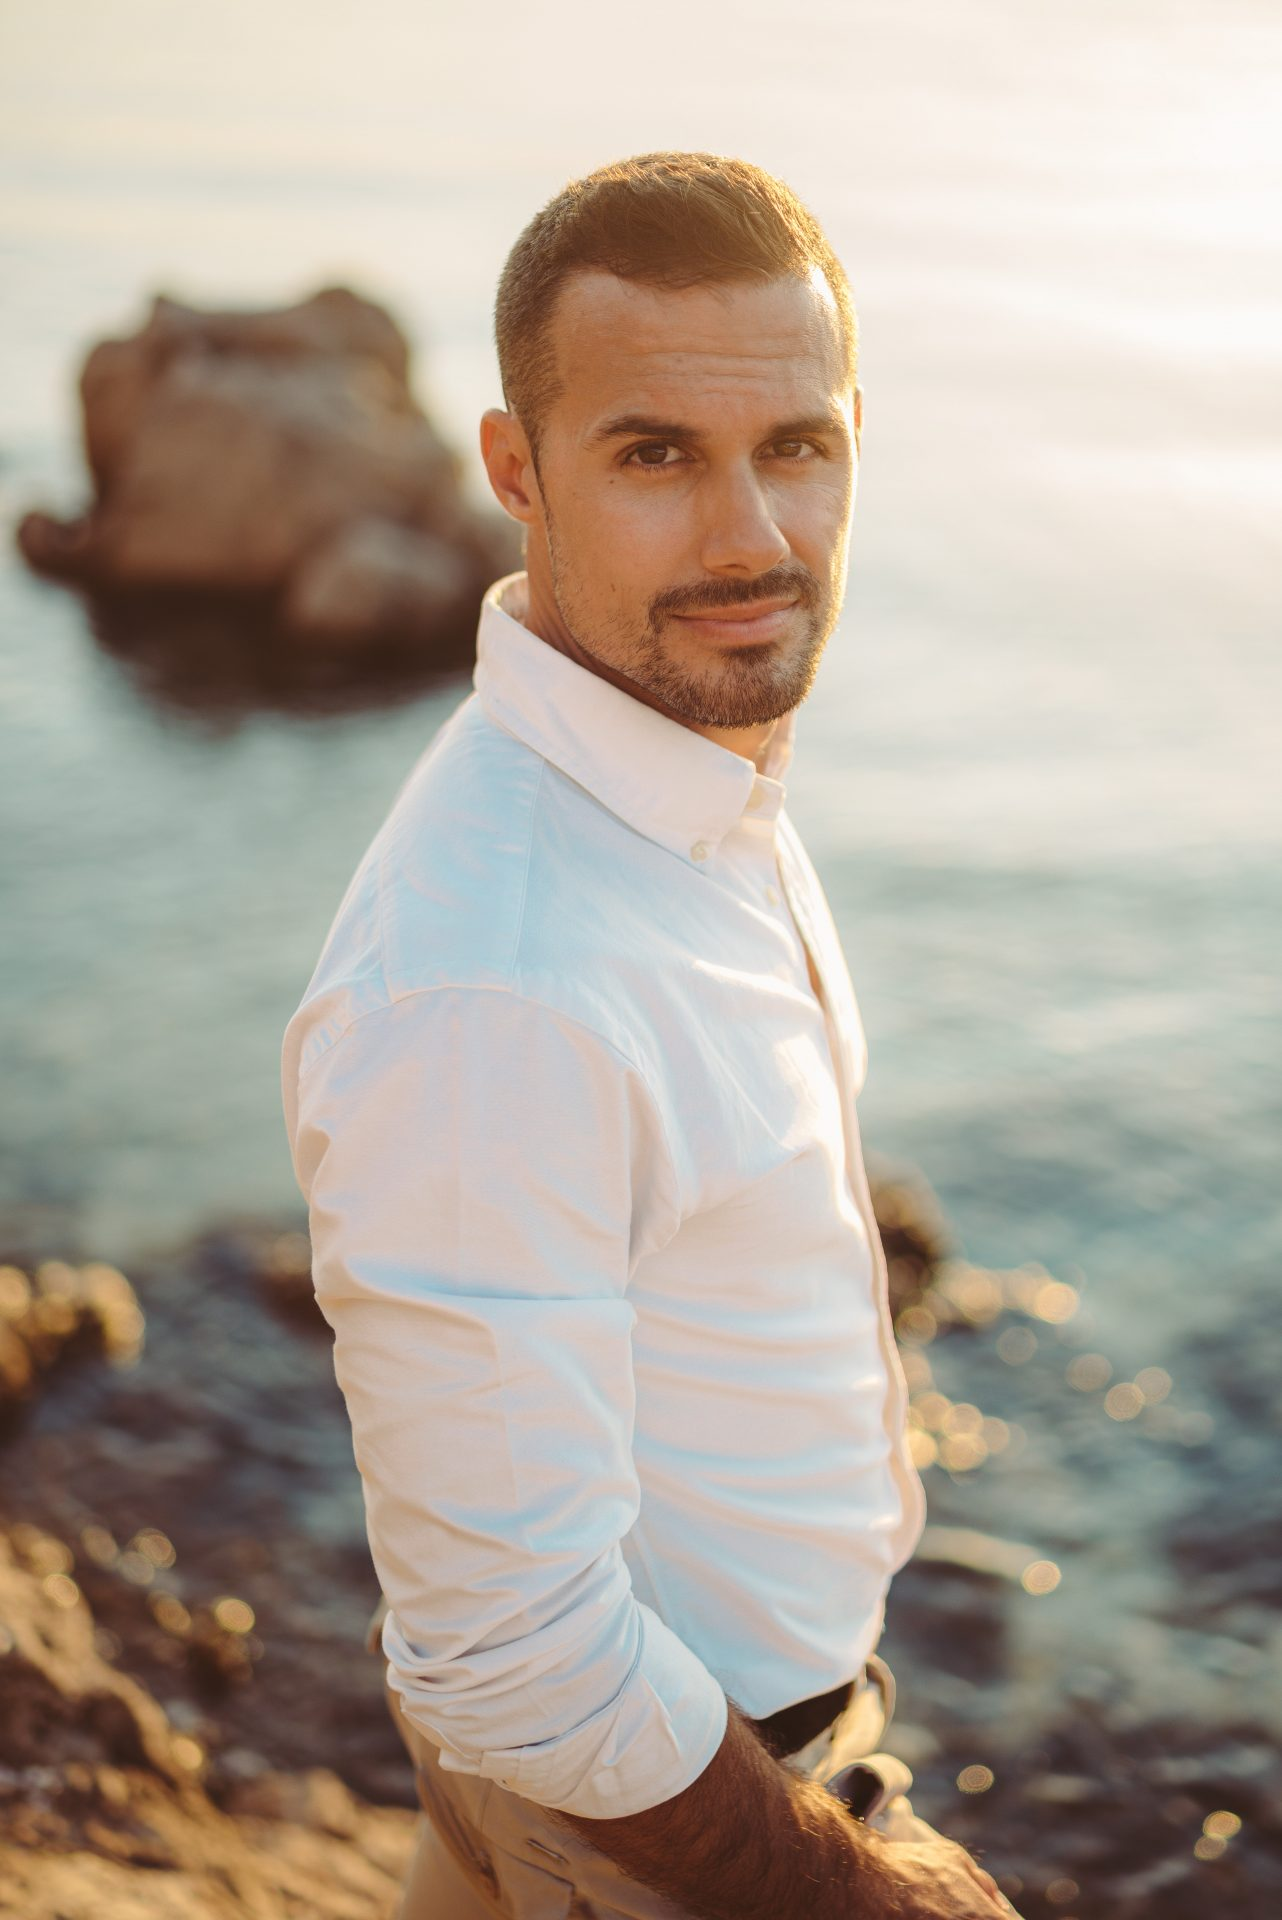 Groom | Wedding and event photographer and videographer in Menorca and Mallorca